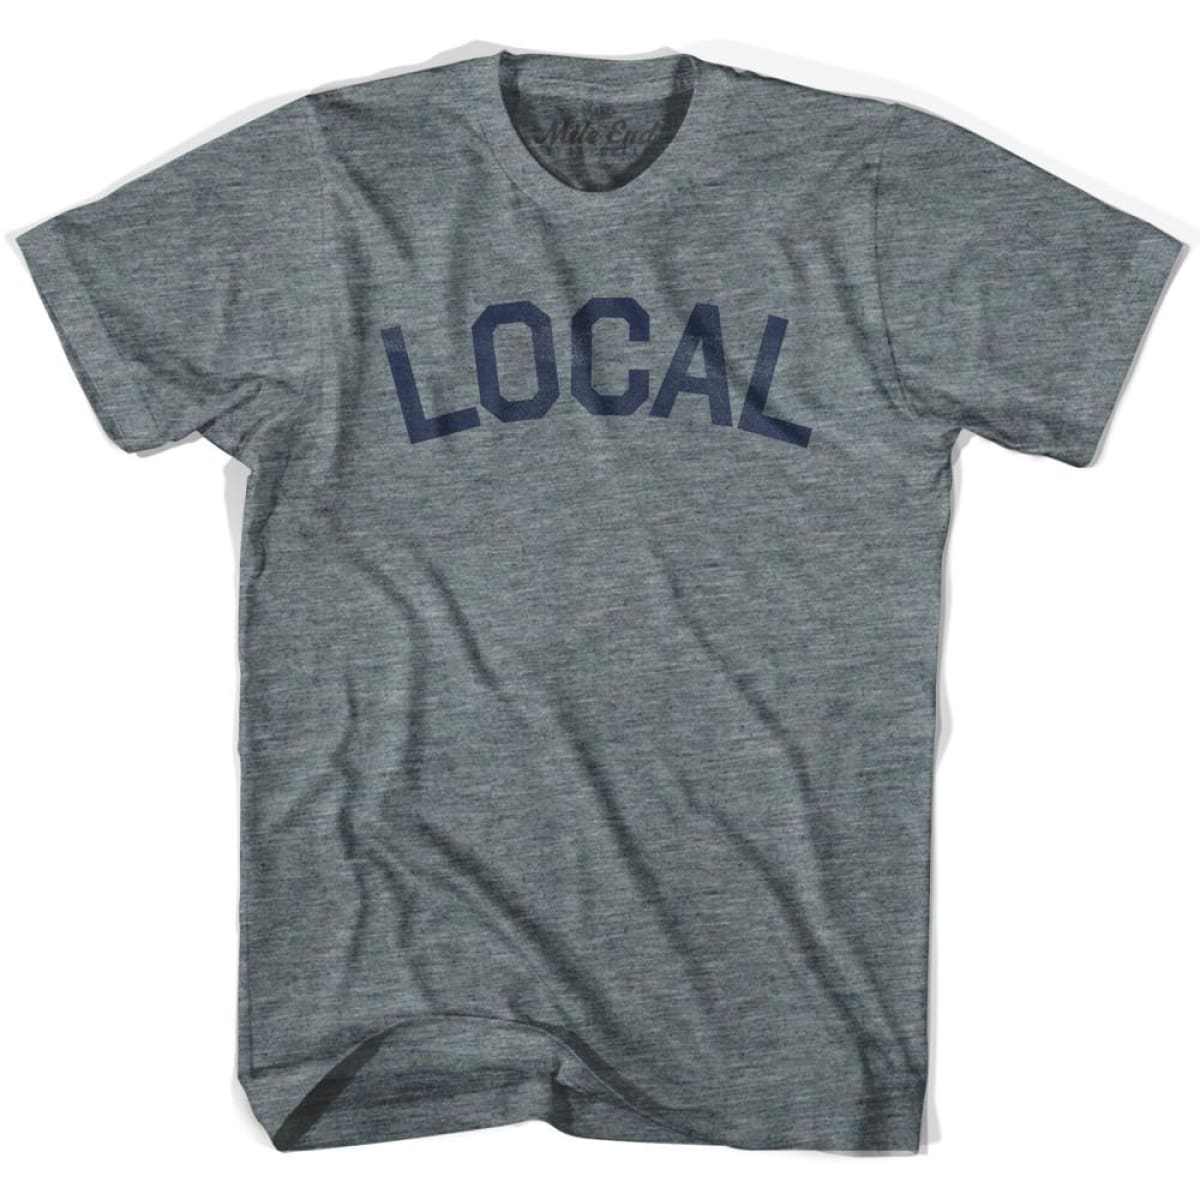 Local City Vintage T-shirt - Athletic Grey / Adult X-Small - Mile End City